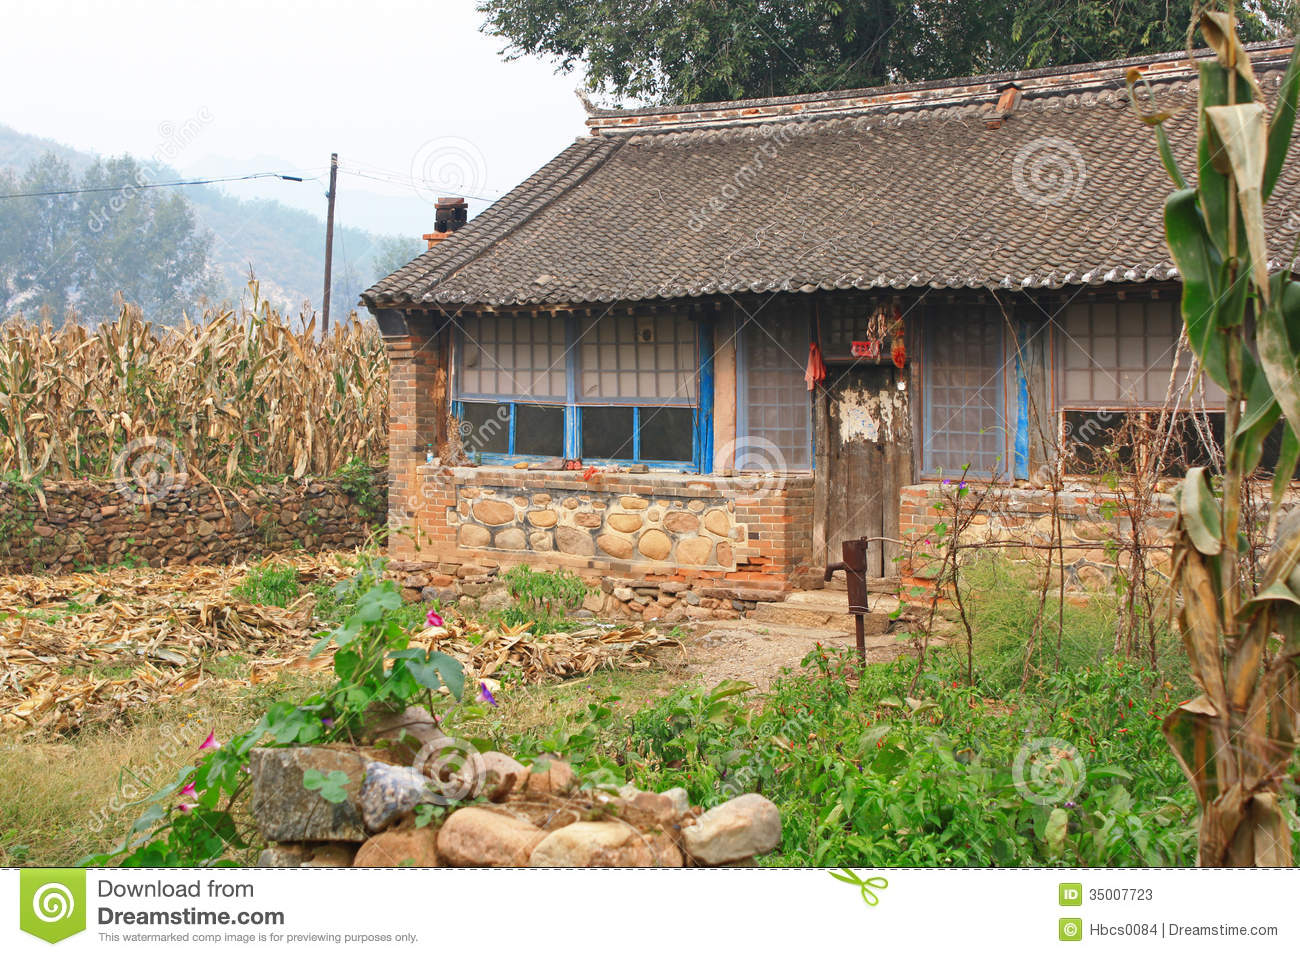 Small farm house in china stock photos image 35007723 for Small house design village